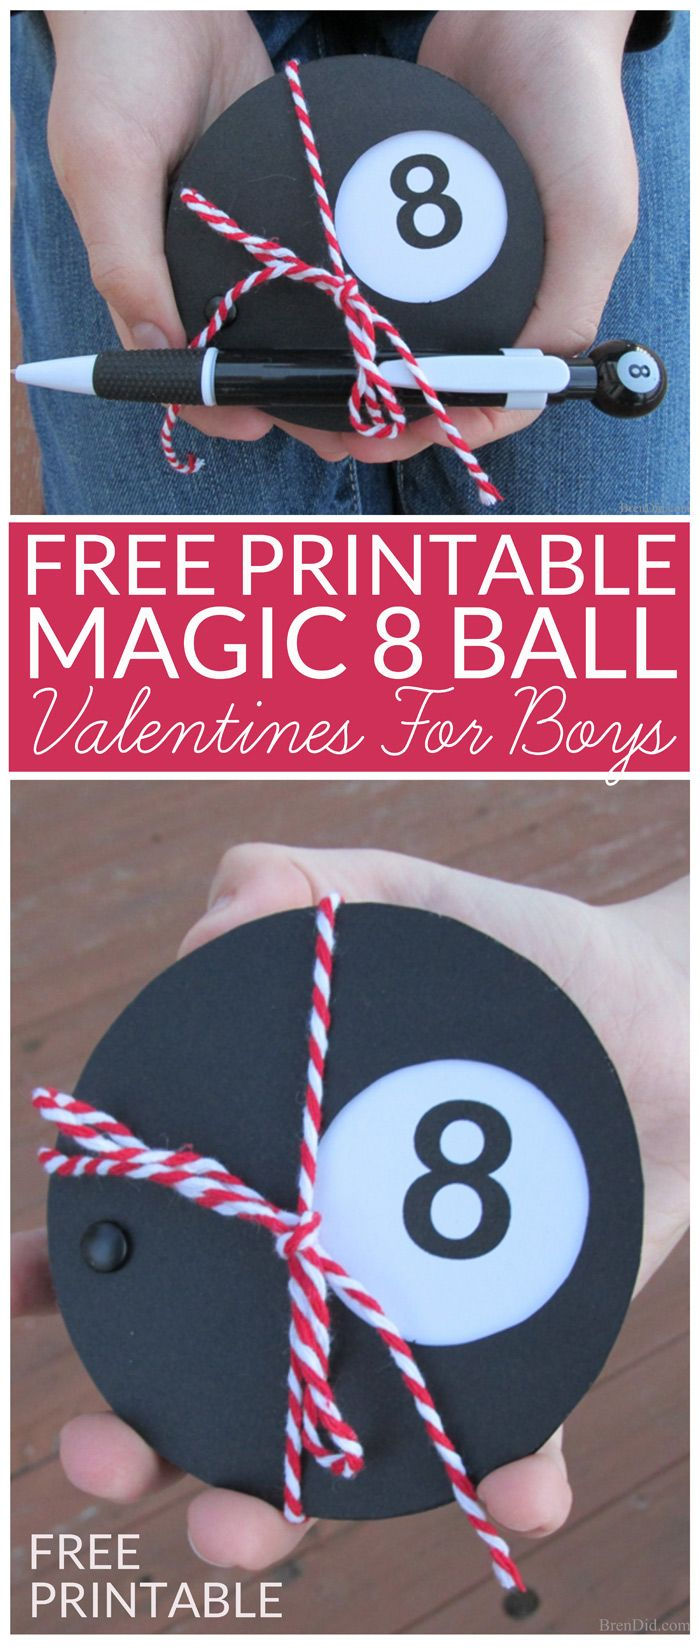 Boys Valentines Idea - Magic 8 Ball Valentines Cards. These DIY Valentines are easy to make with free printable pattern. Frugal craft uses only black and white card stock, a printer, and black brads. Add cute Magic Eight Ball Pen for fun, non-candy Valentines. A great free Valentine for Boys.